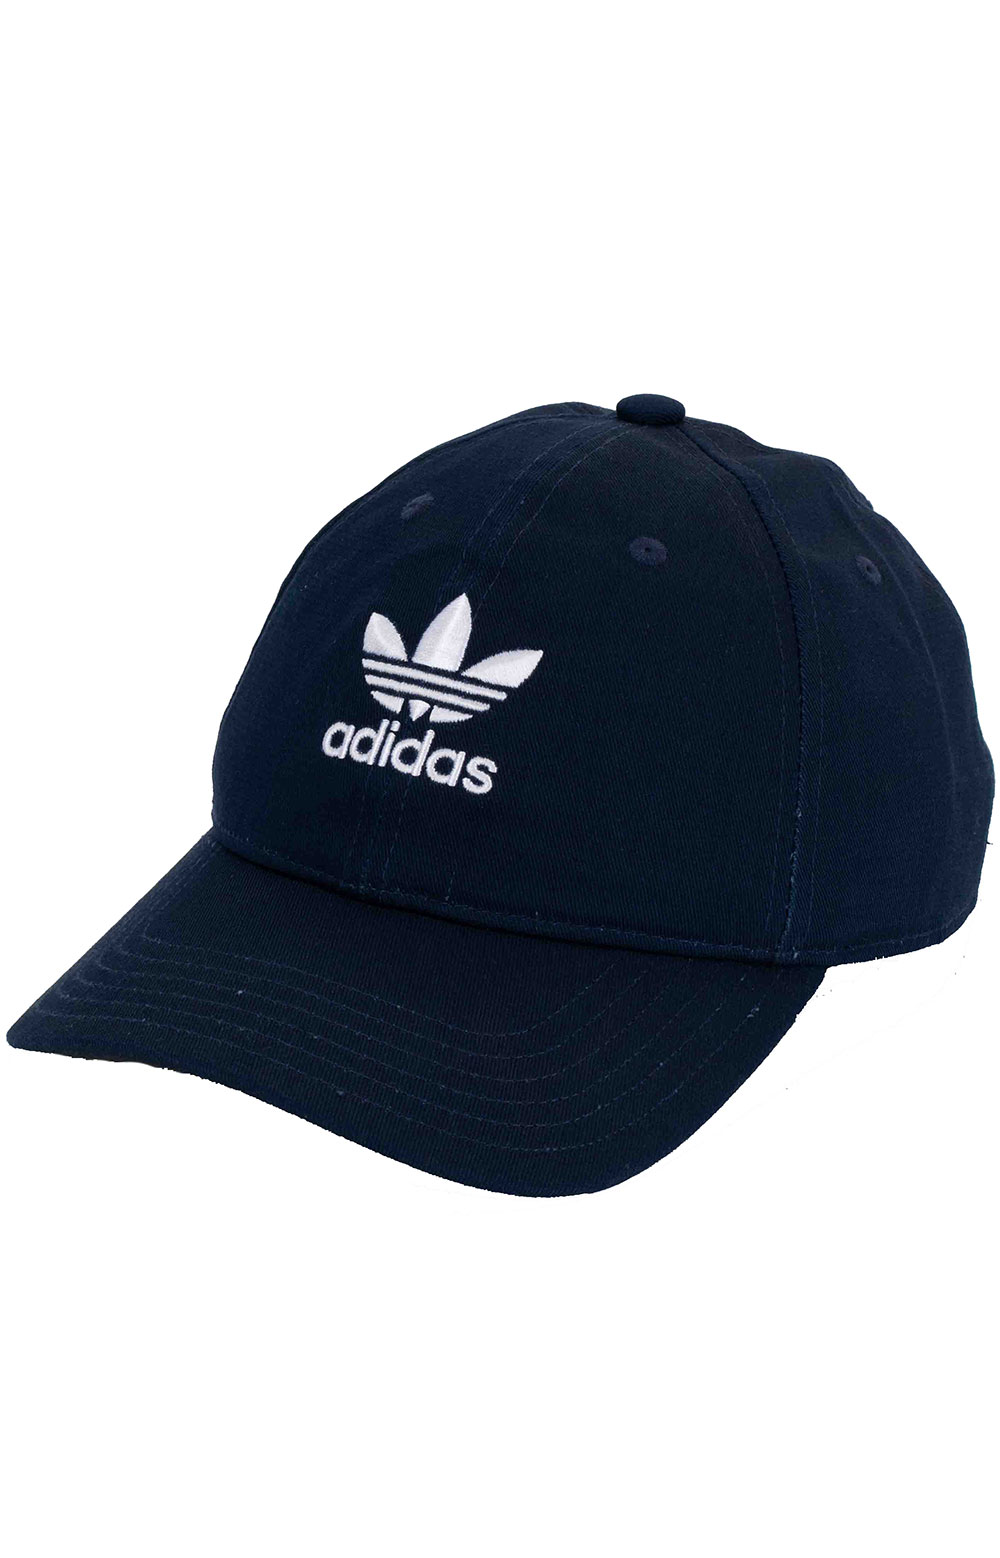 Originals Relaxed Strap-Back Hat - Collegiate Navy